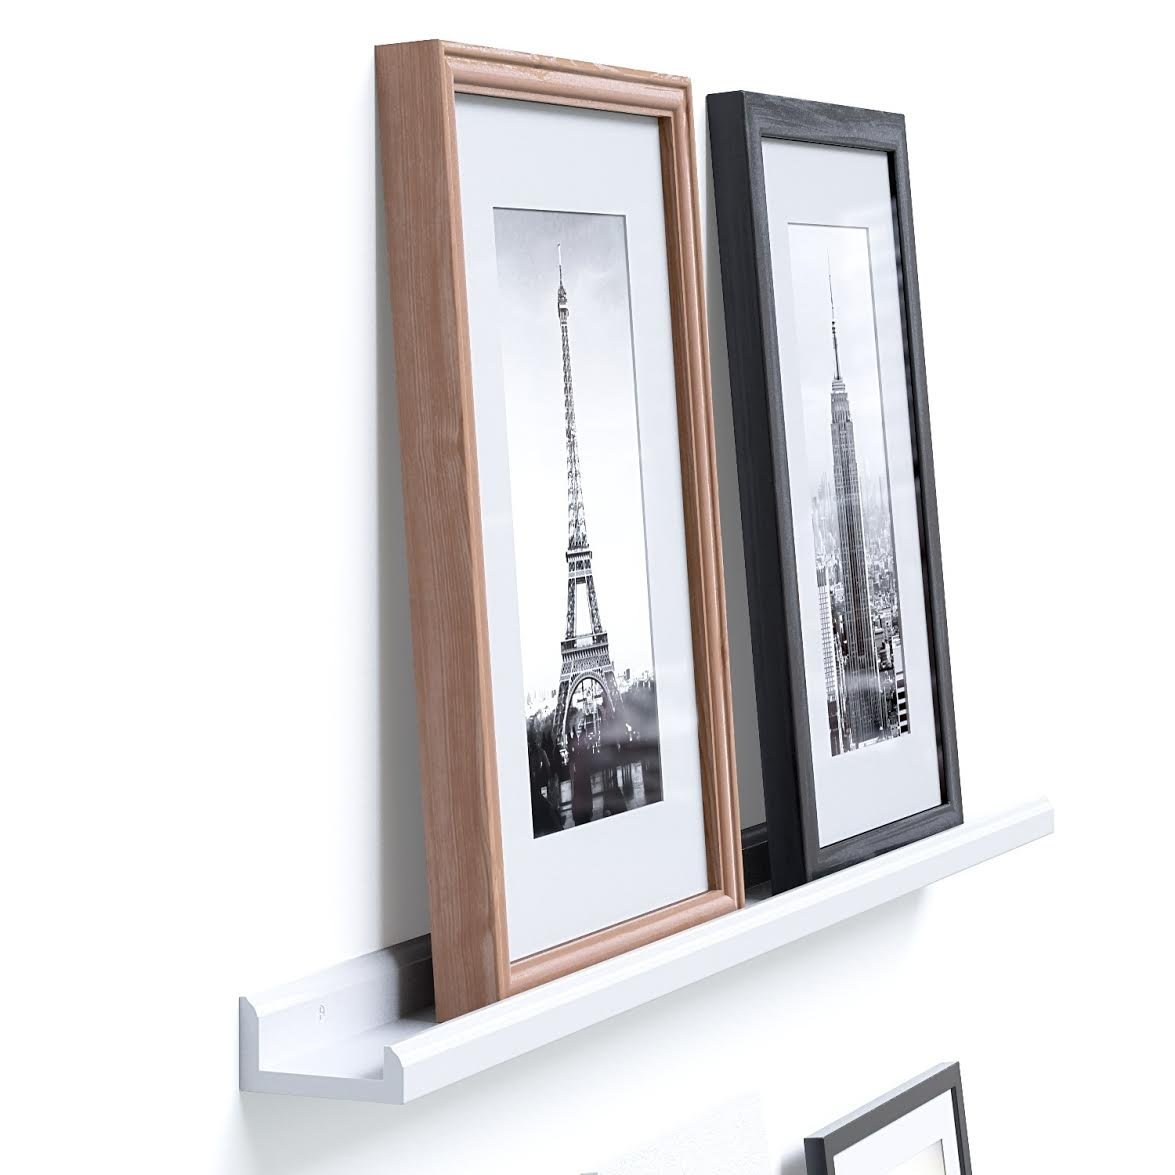 Amazon.com: WALLNITURE Contemporary Floating Wall Shelf Ledge for Picture  Frames Book Display 46 Inch White: Home & Kitchen